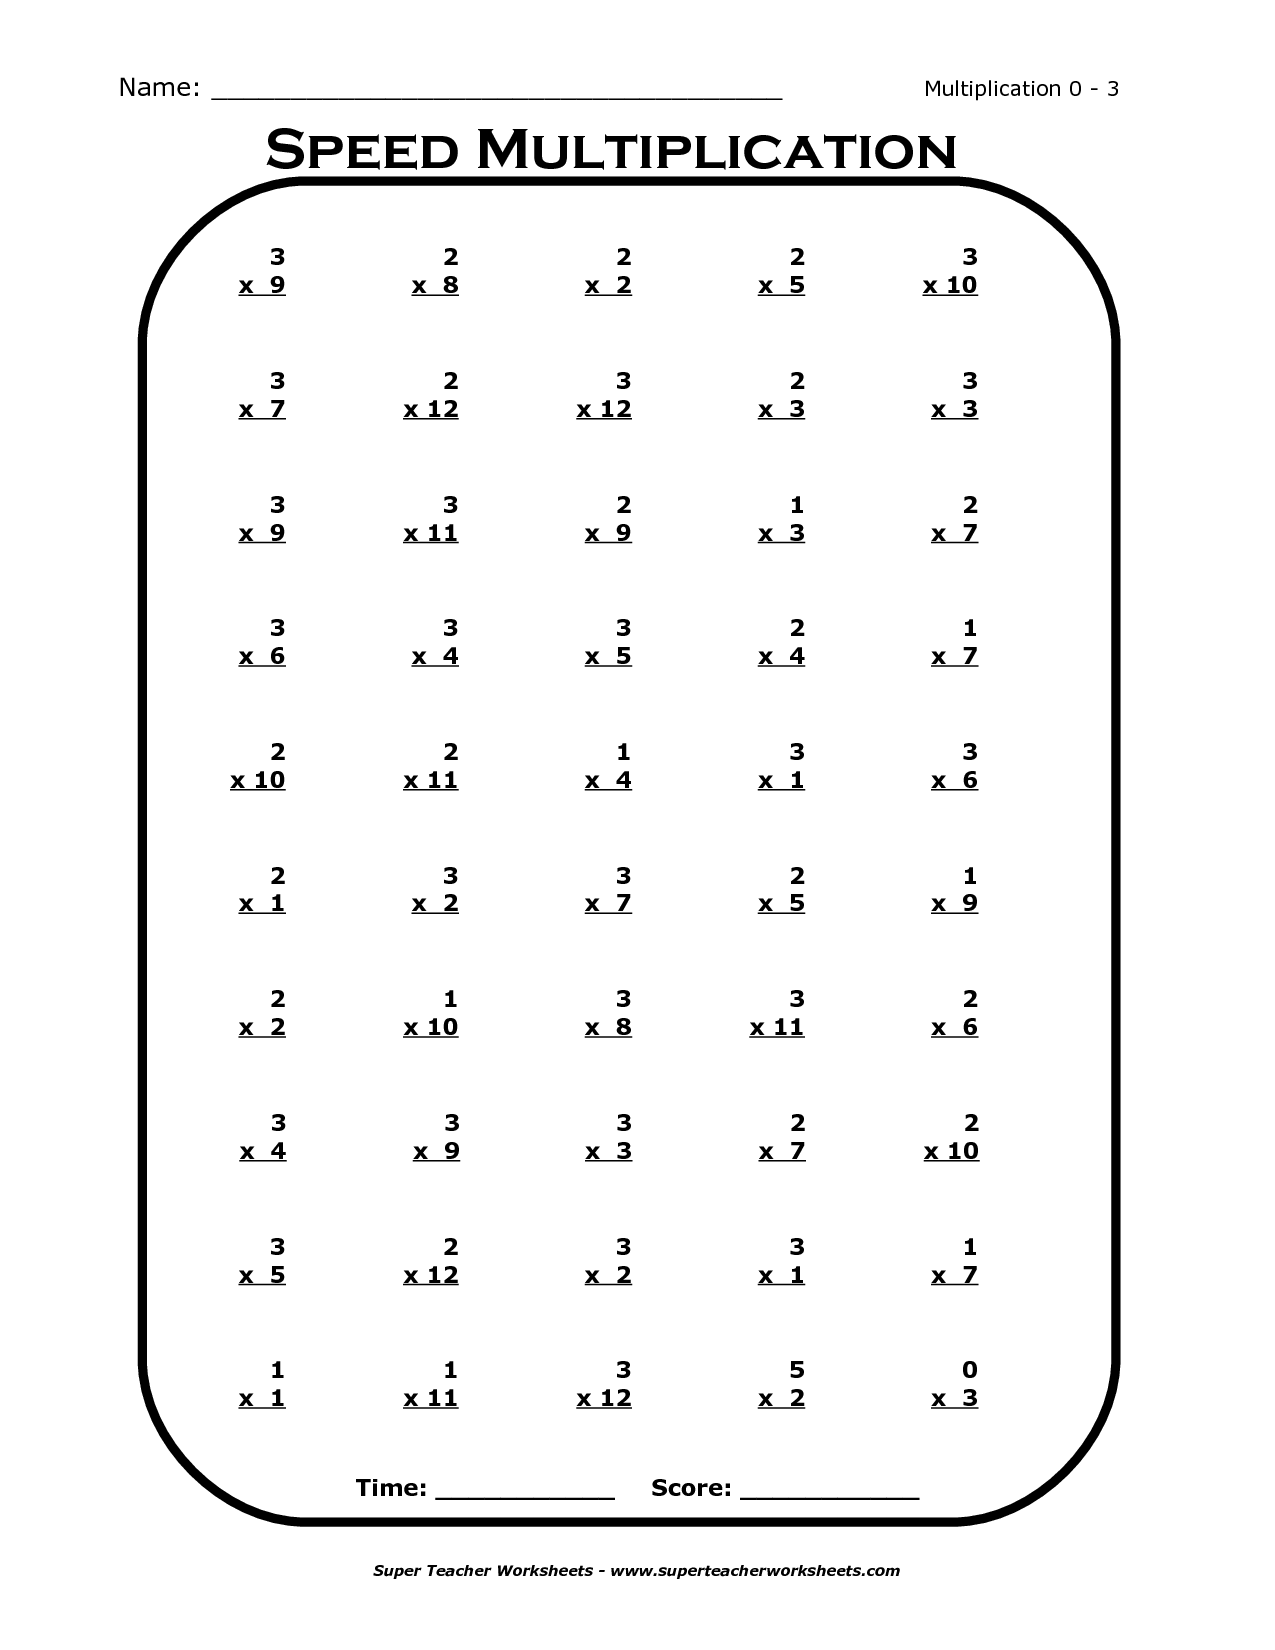 Multiplication Table 6 9 Yourhelpfulelf – Multiplication Worksheets 6